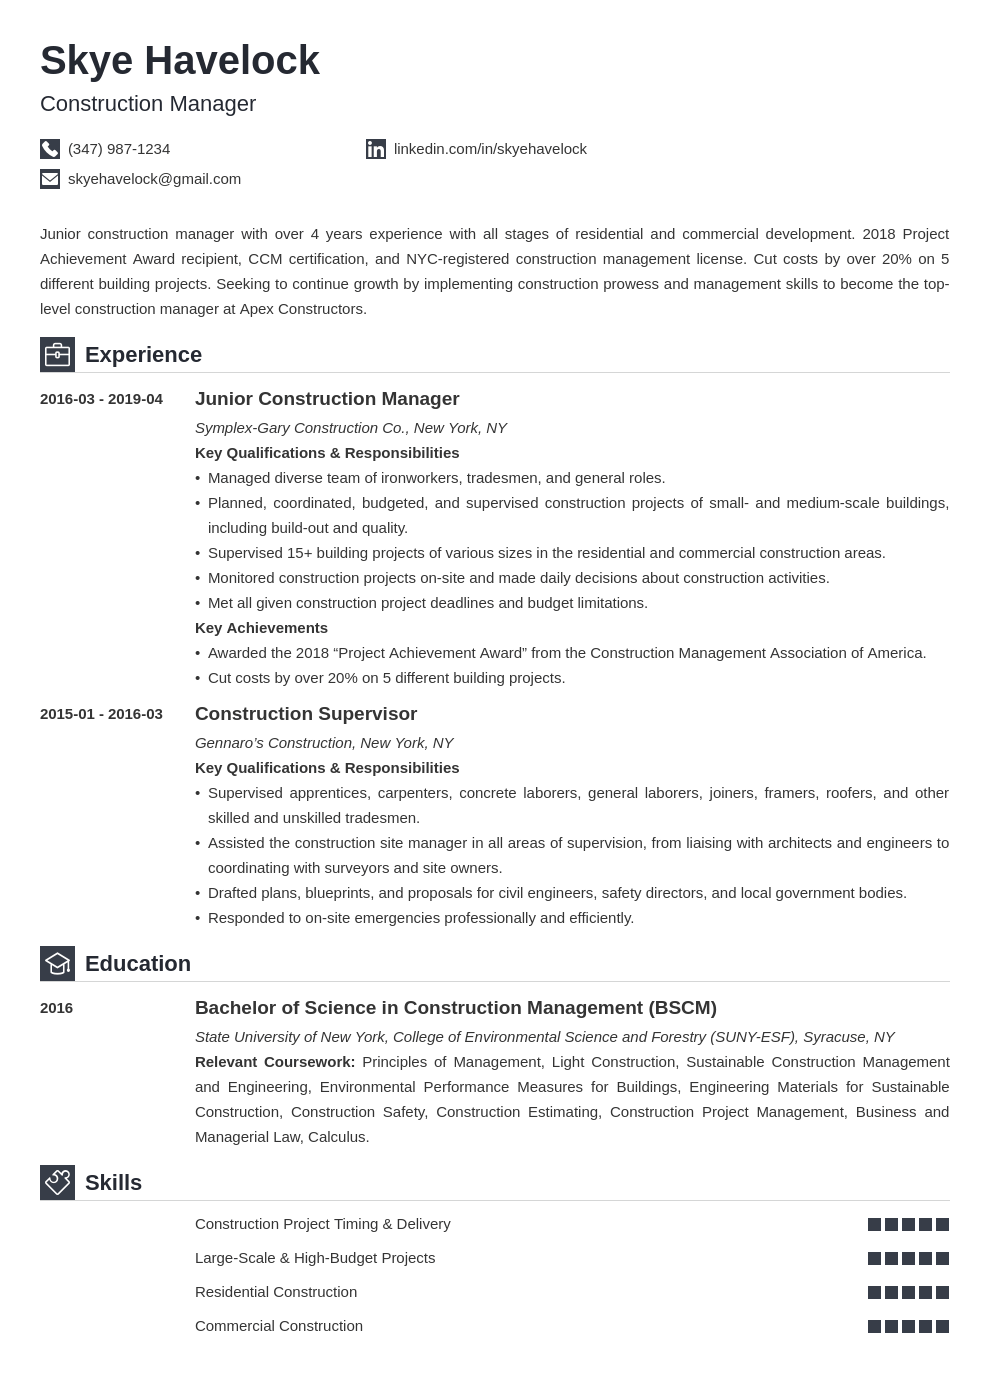 Construction Manager Resume Sample [+Objective & Skills]